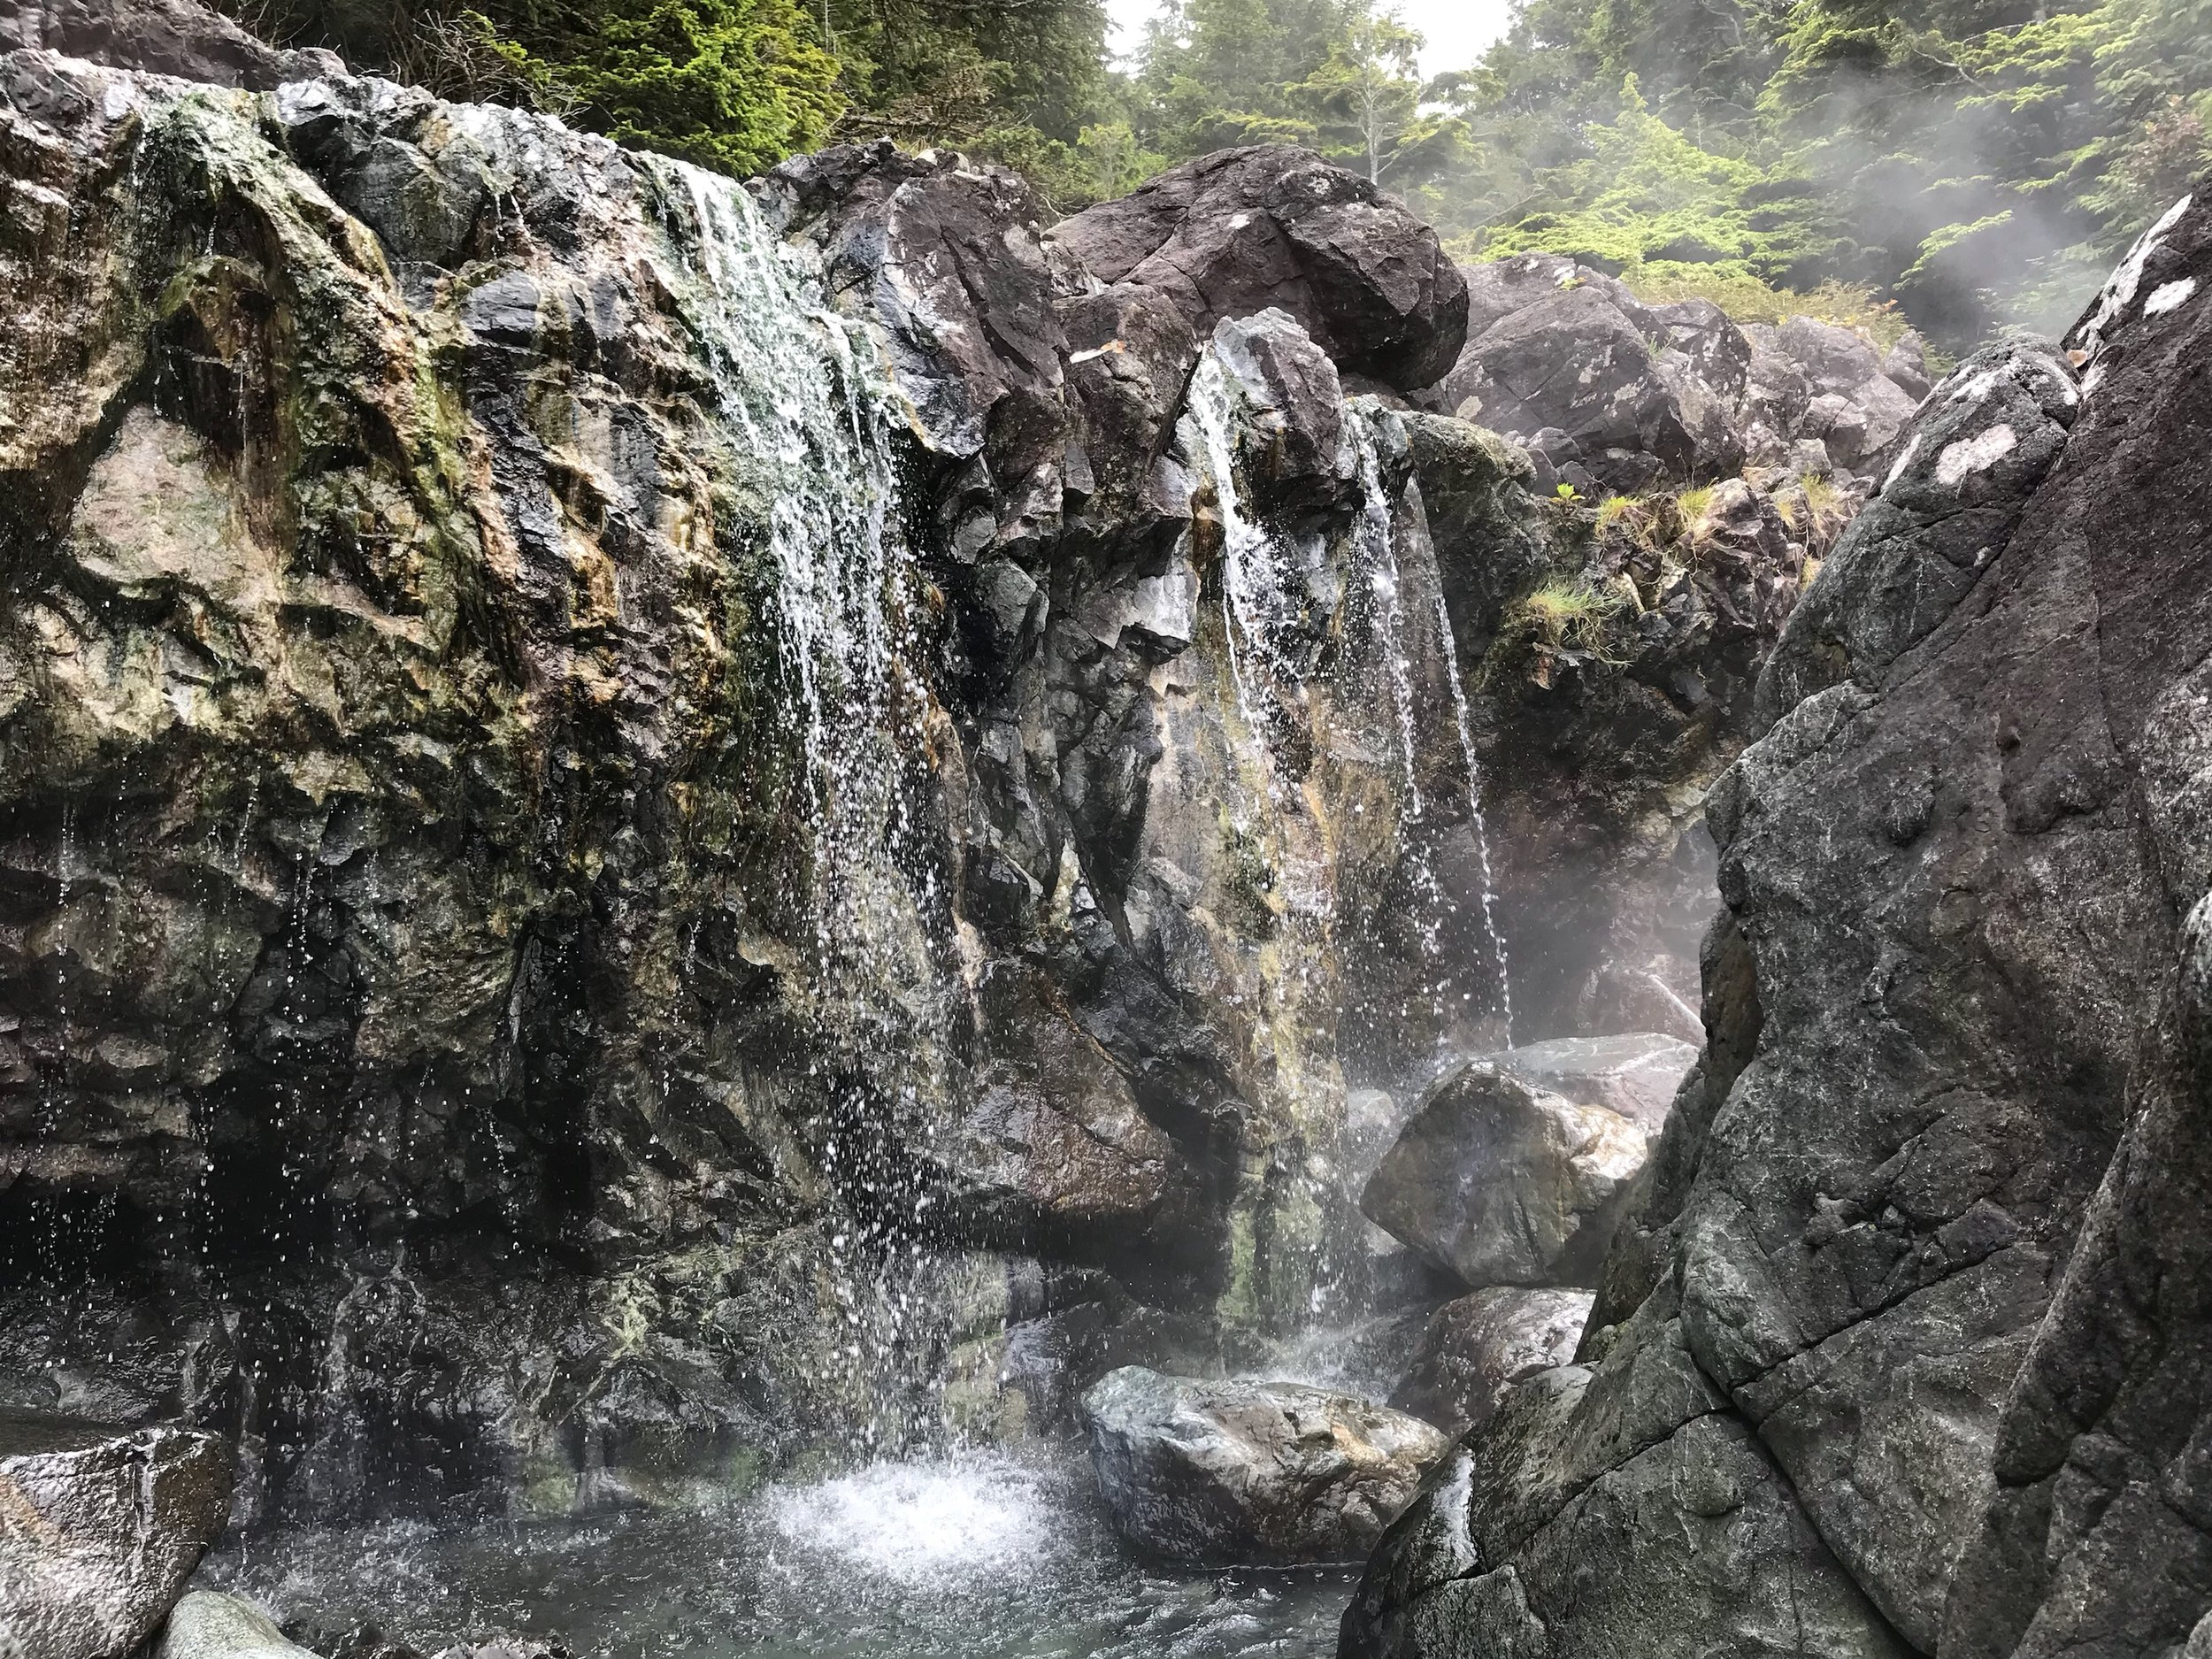 TOFINO HOT SPRINGS TOUR